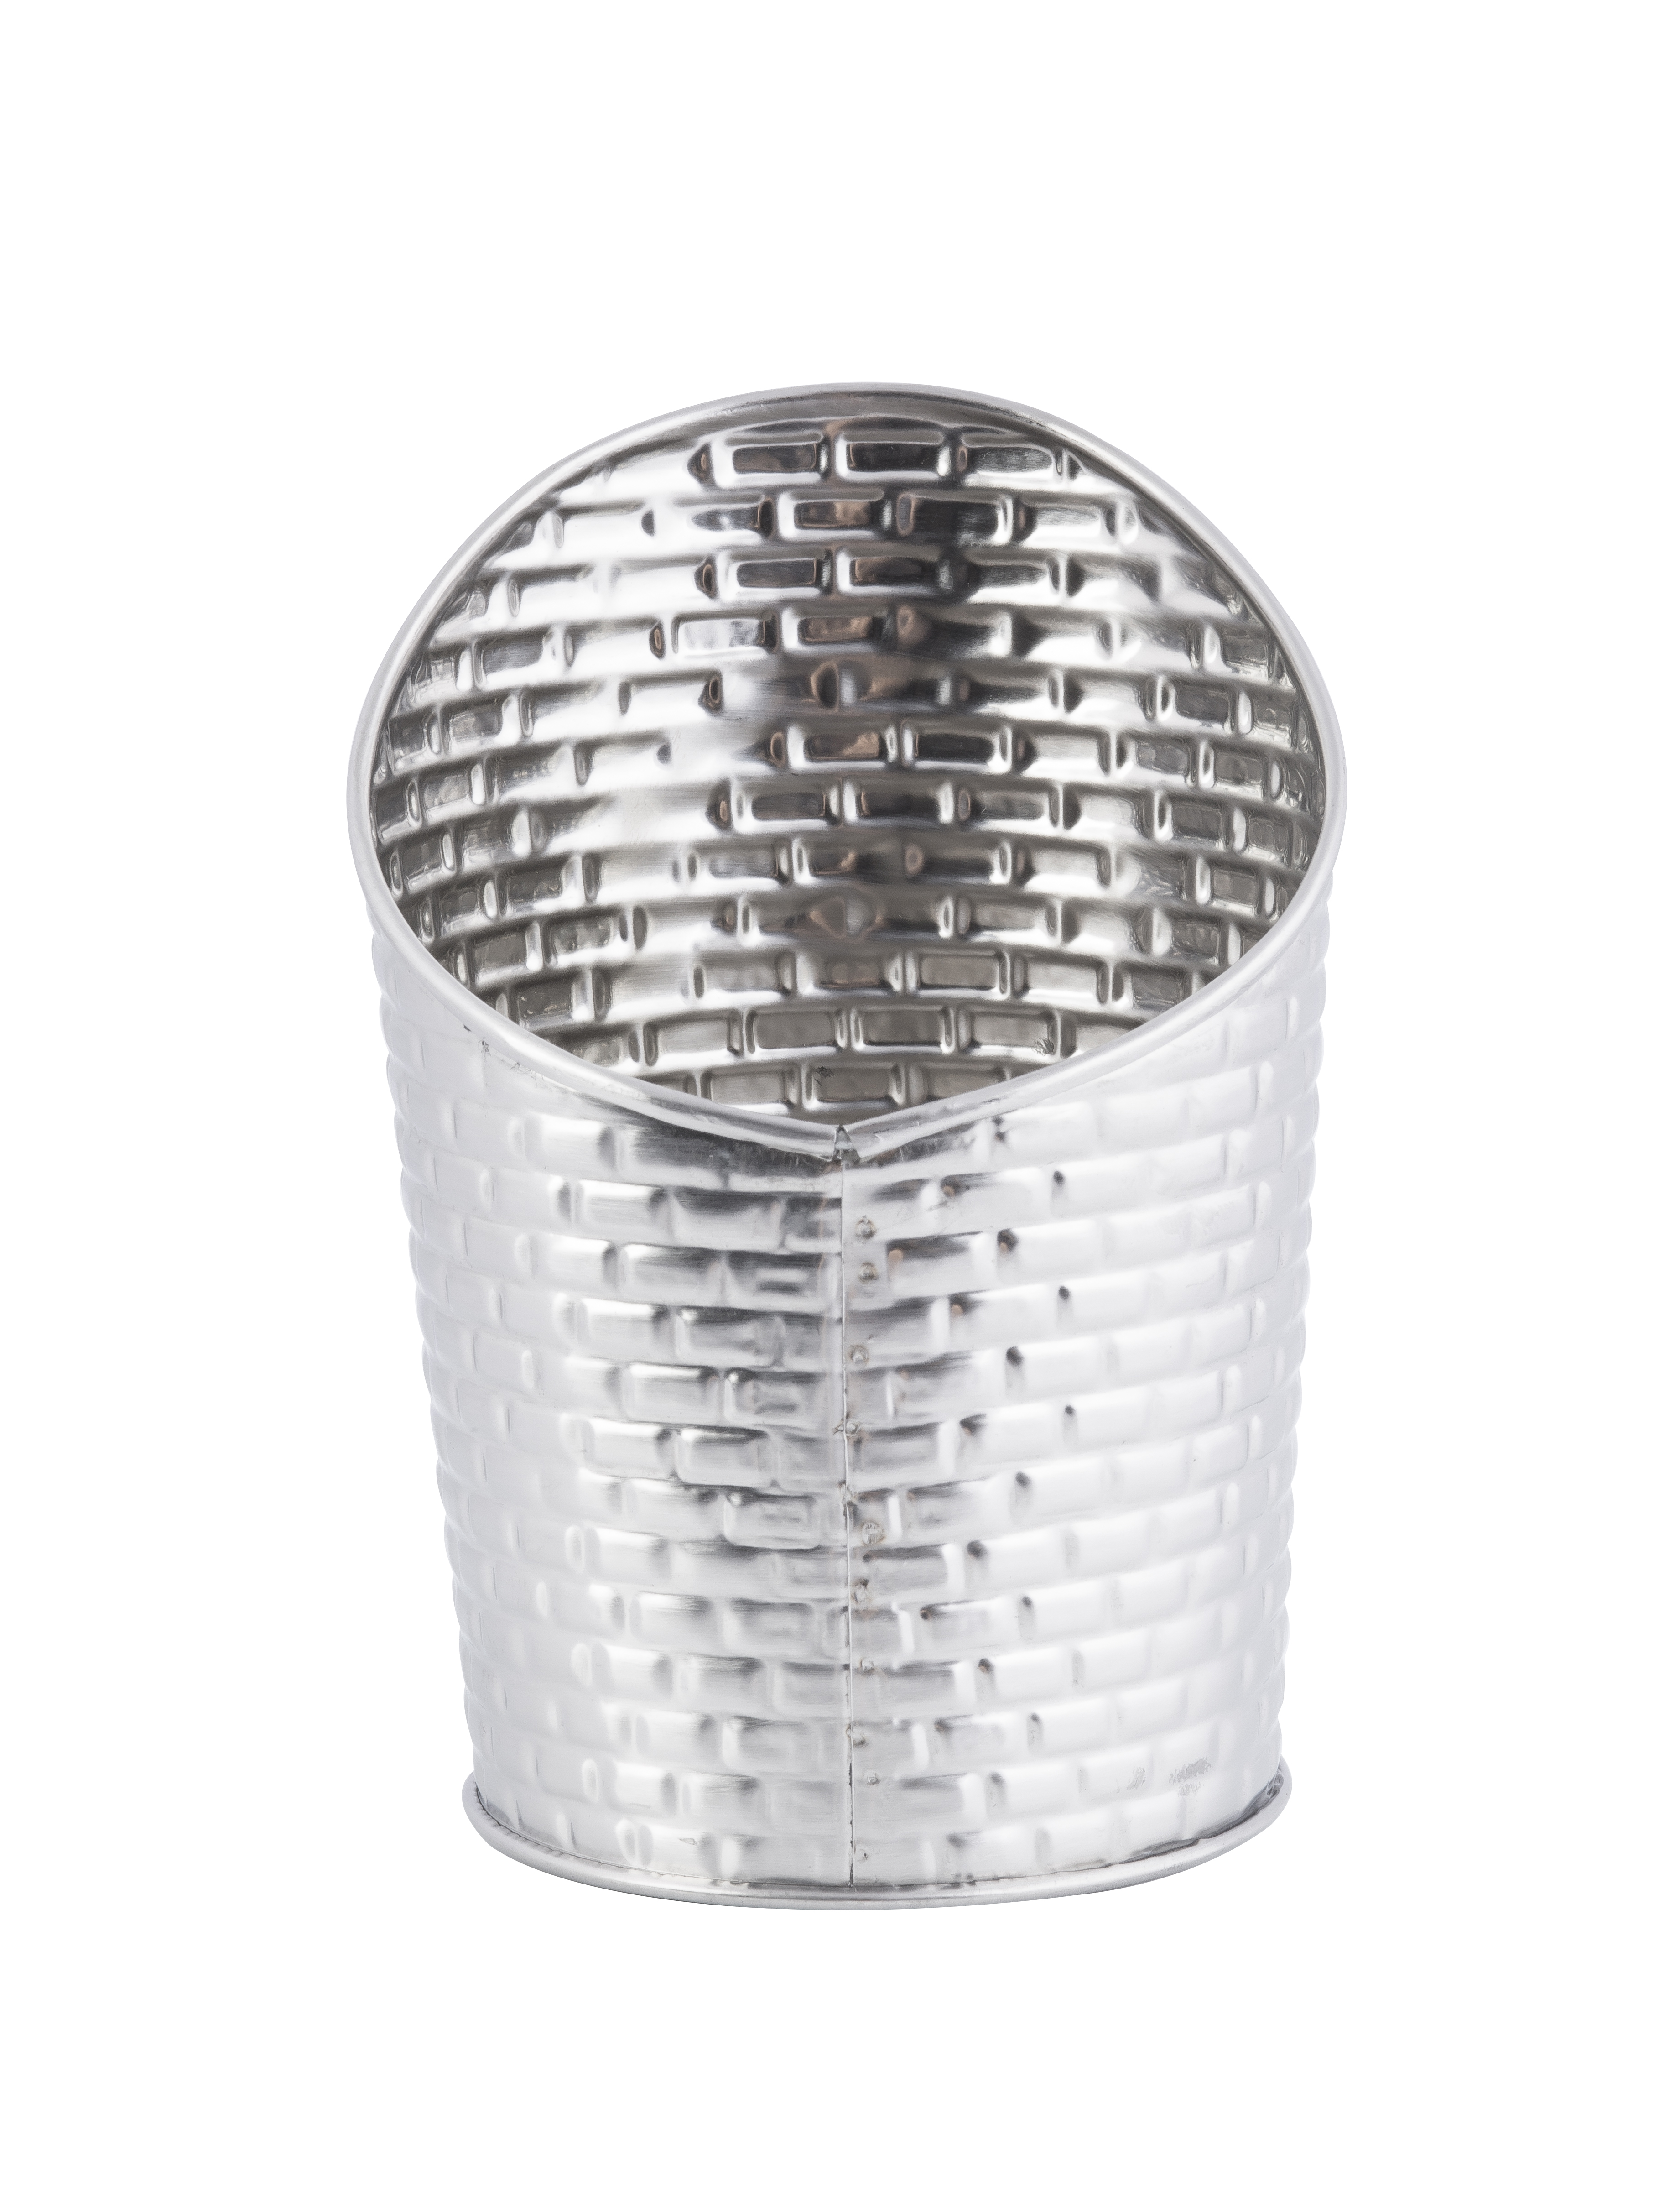 TableCraft Products GTSS28 stainless steel brickhouse col